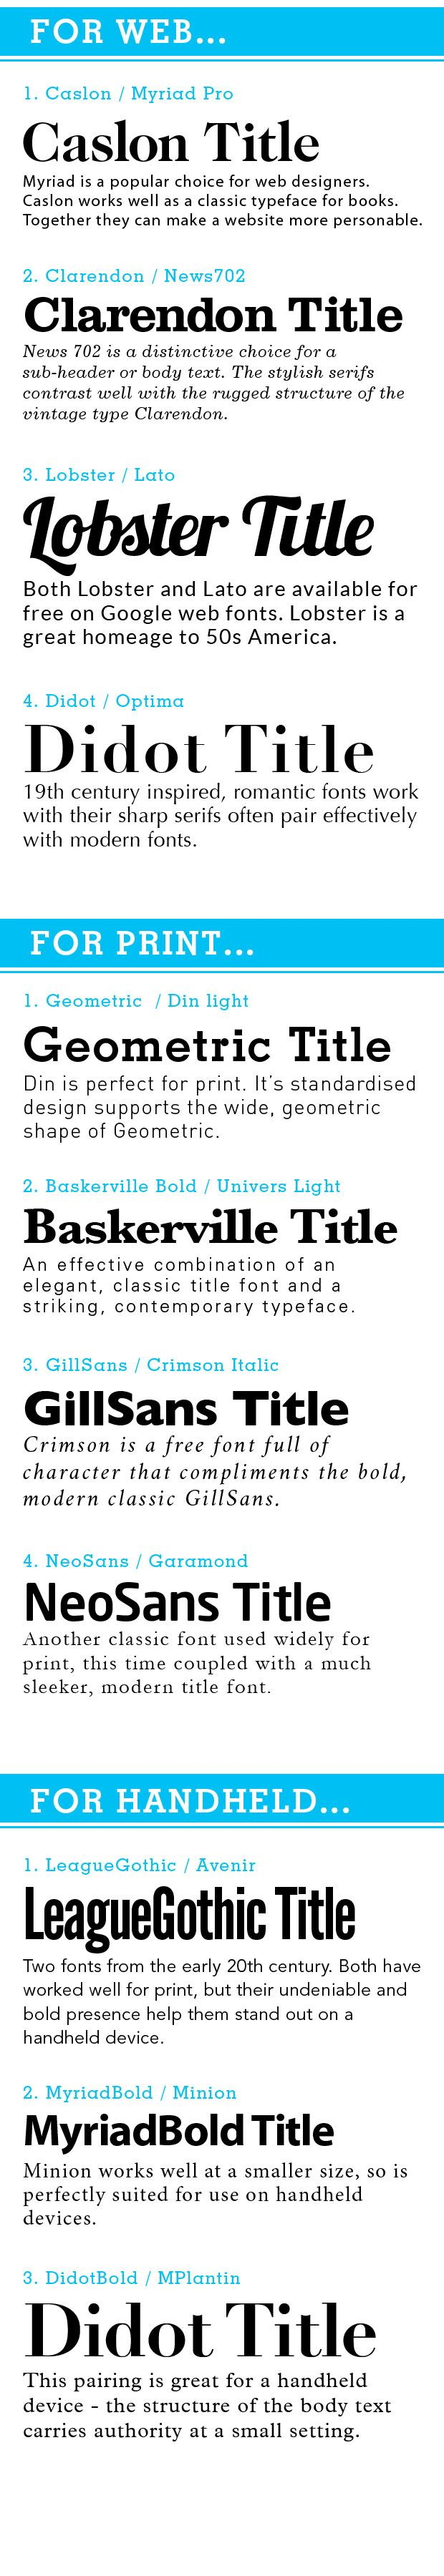 LONO Creative – 11 Font combinations for print, web and hand-held